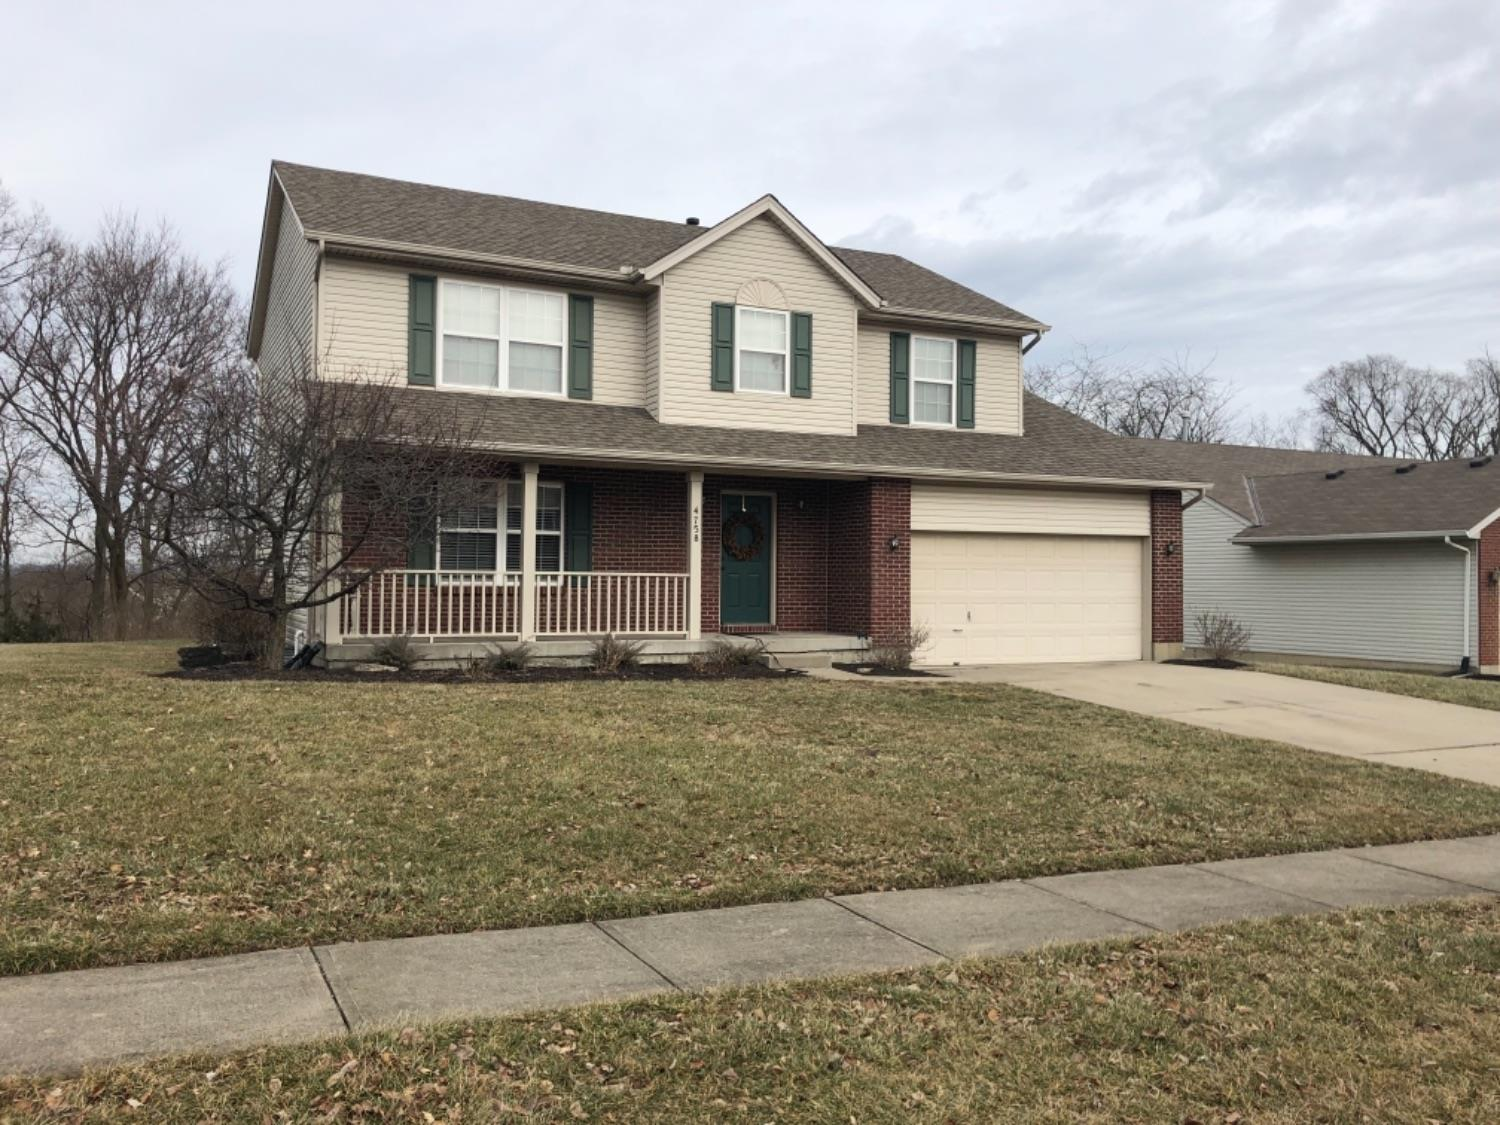 Property for sale at 4758 Long Drive, Liberty Twp,  OH 45011